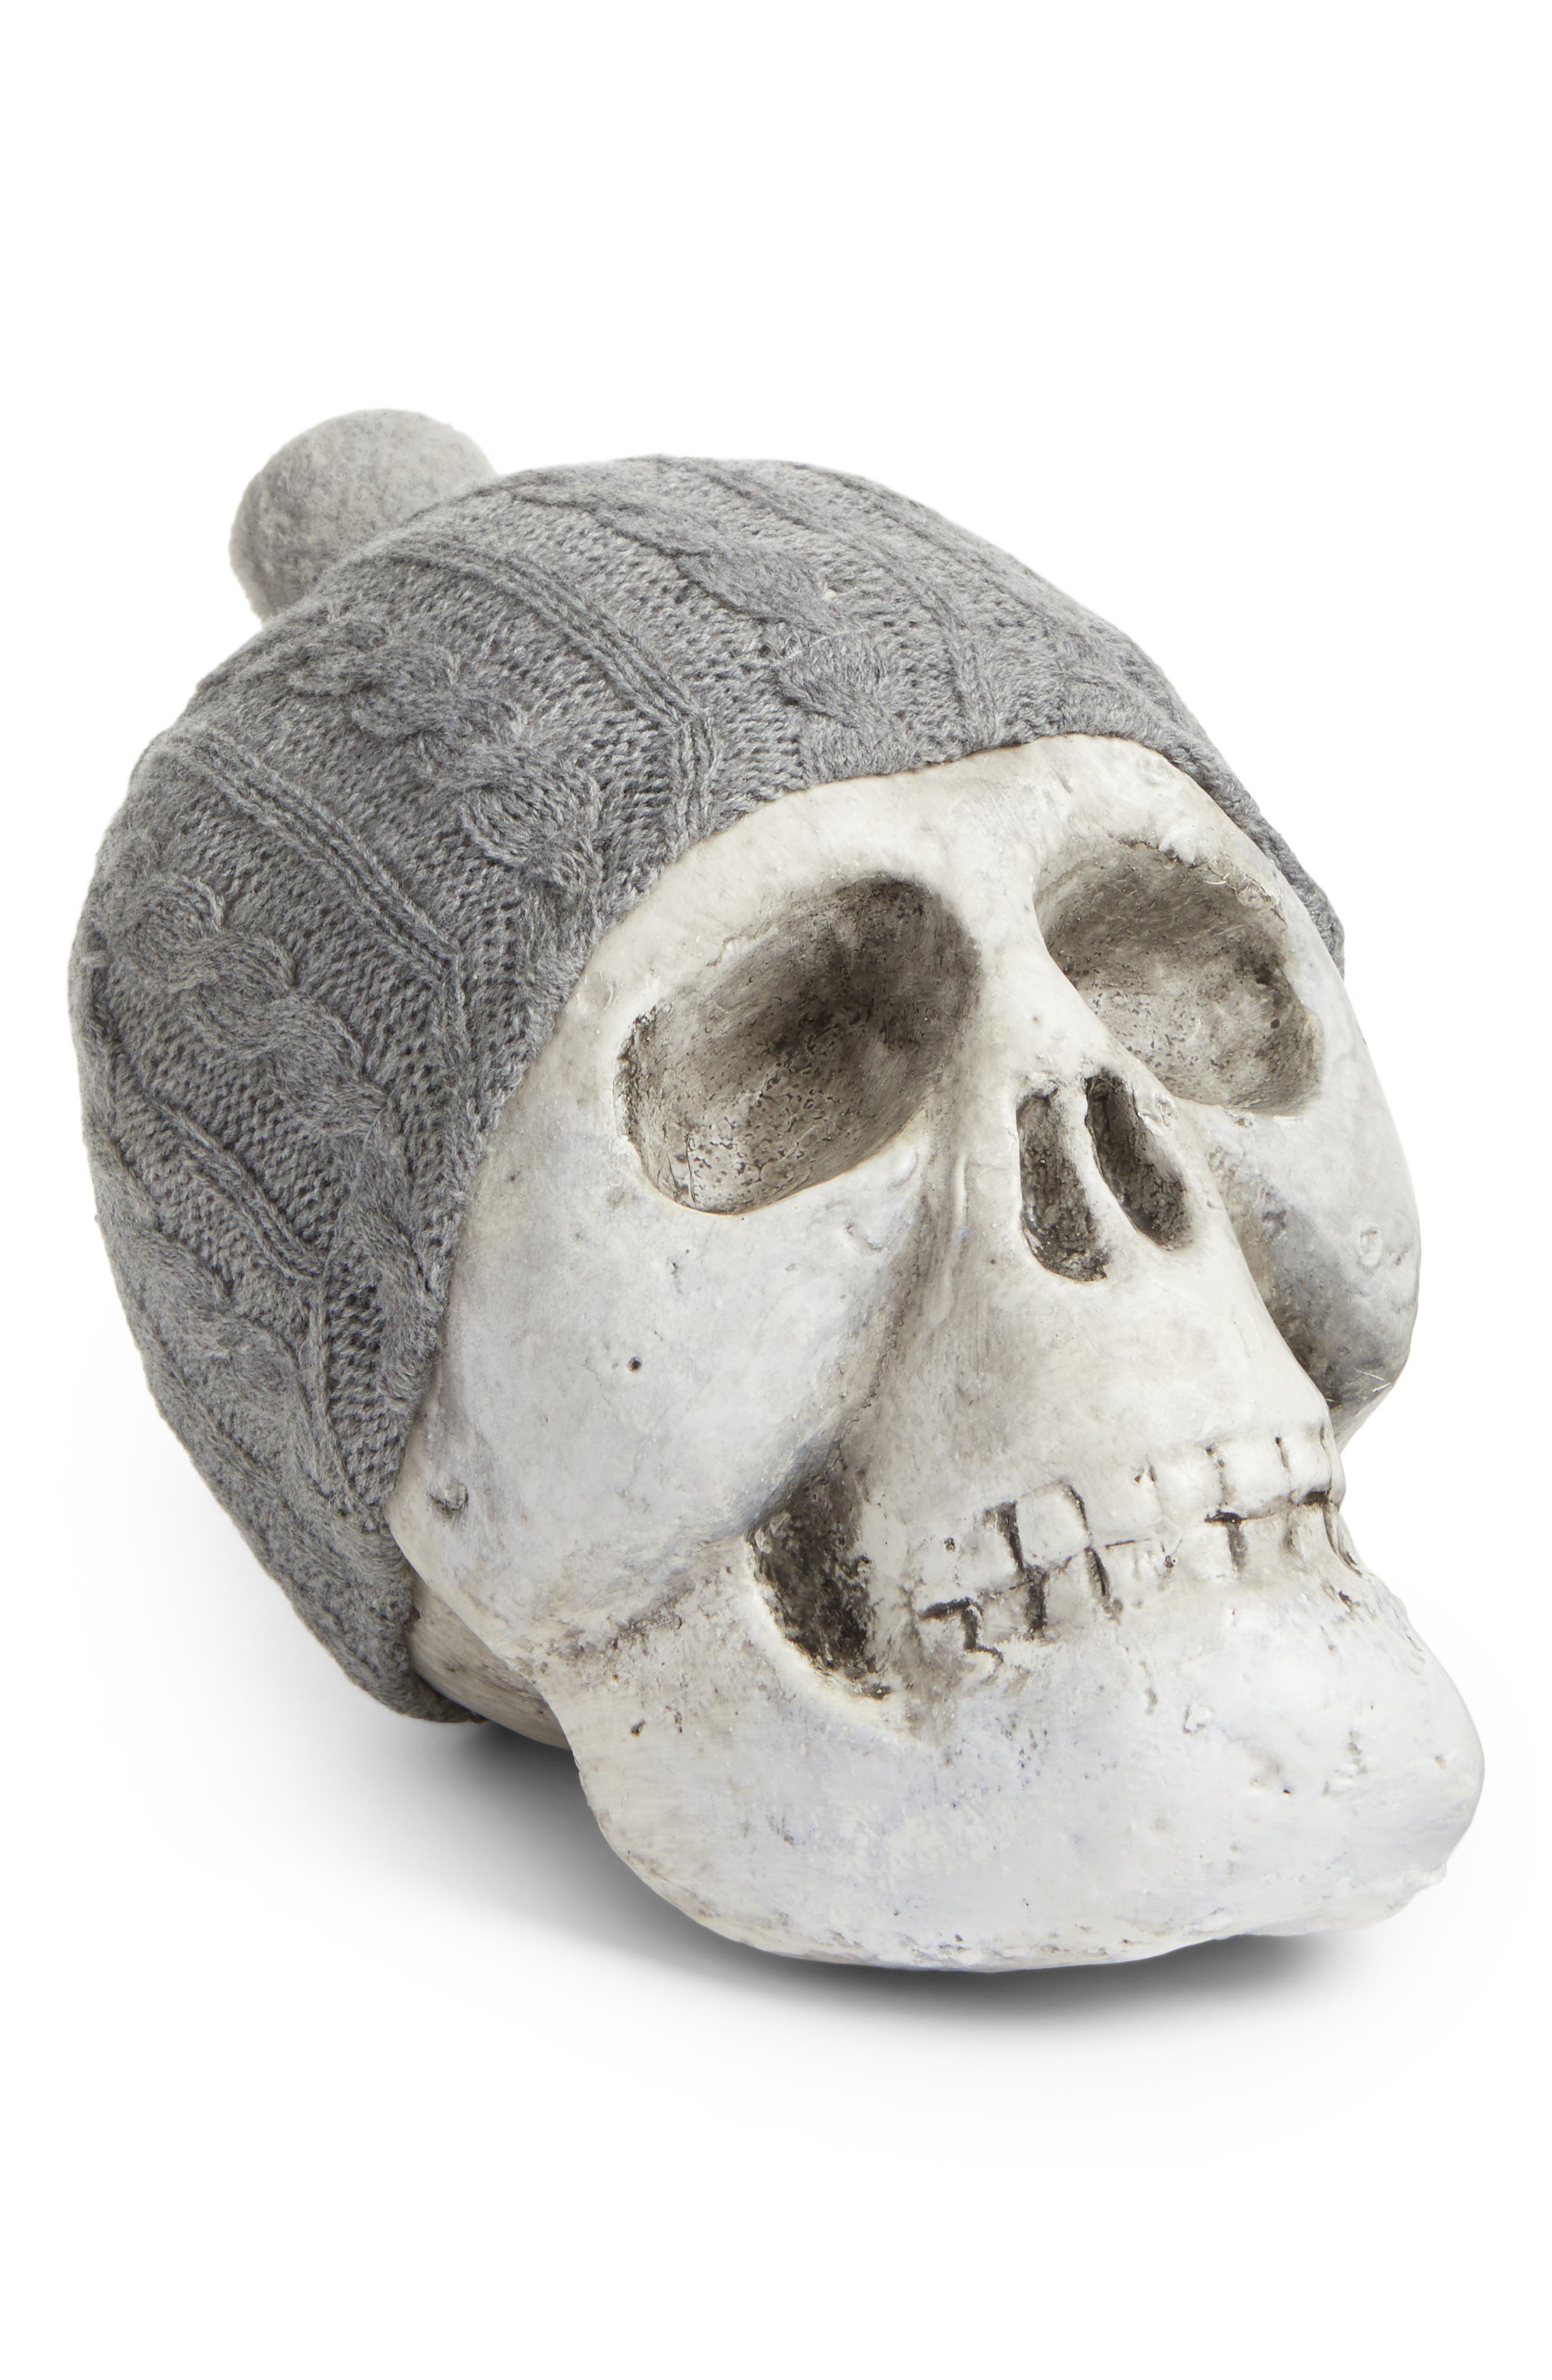 ALLSTATE Skull with Beanie Decoration